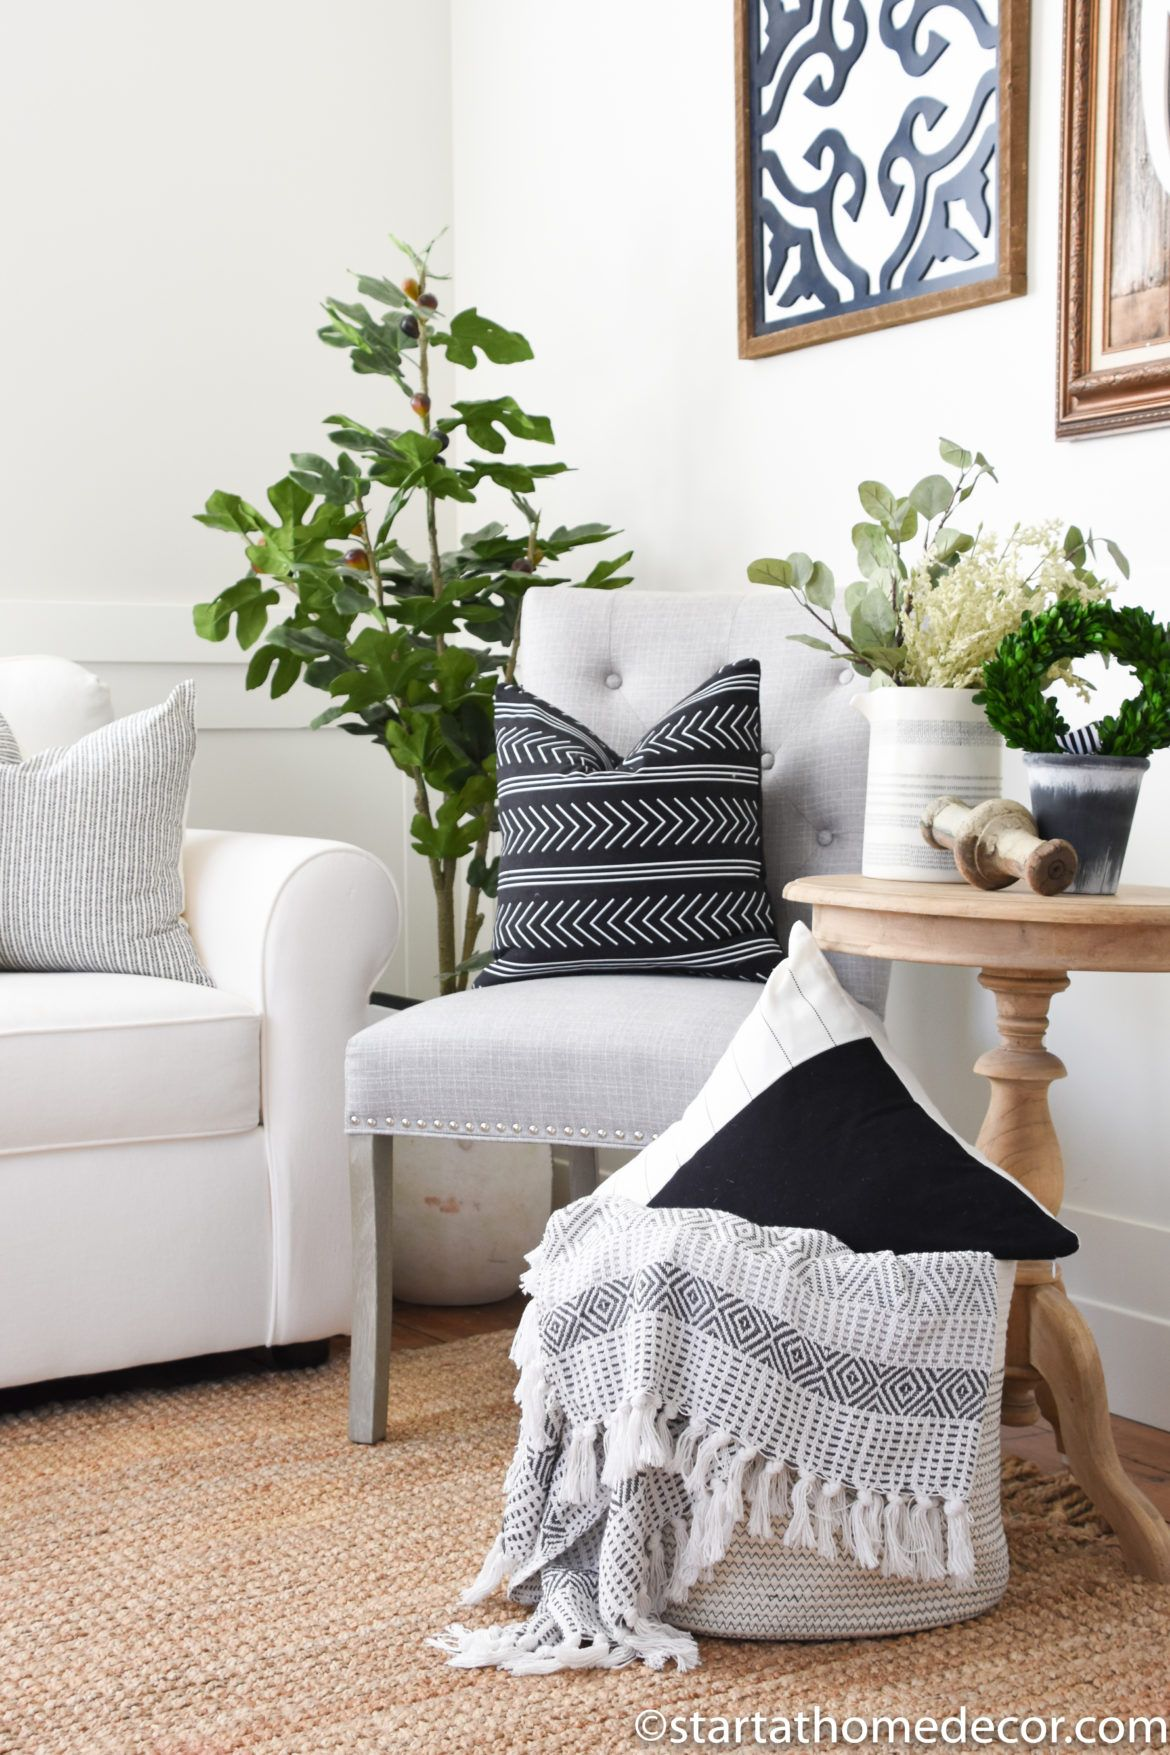 how to use decorative pillows how to use throw pillows in your decor throw blanket  decor how to use throw pillows on a bed how to use throw pillows in your decor